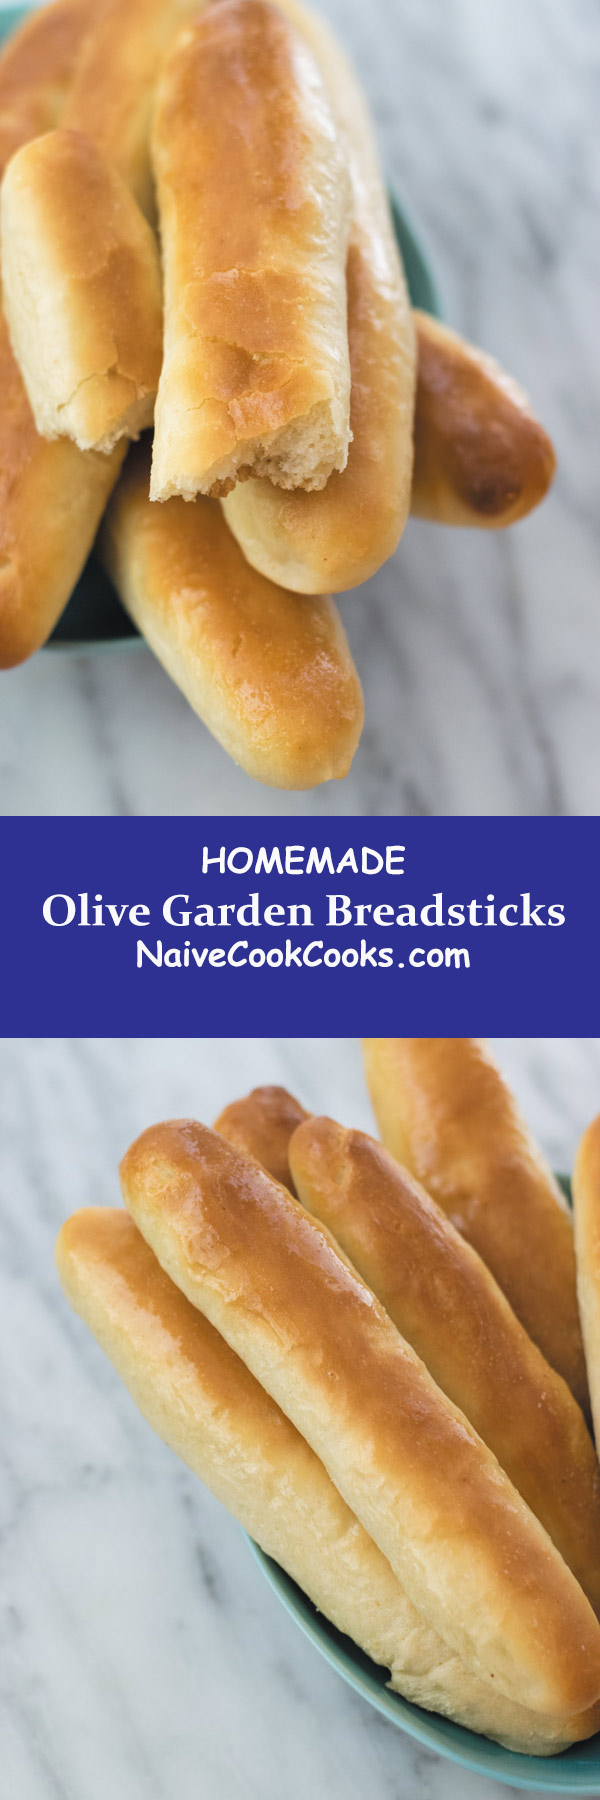 homemade olive garden breadsticks long pin